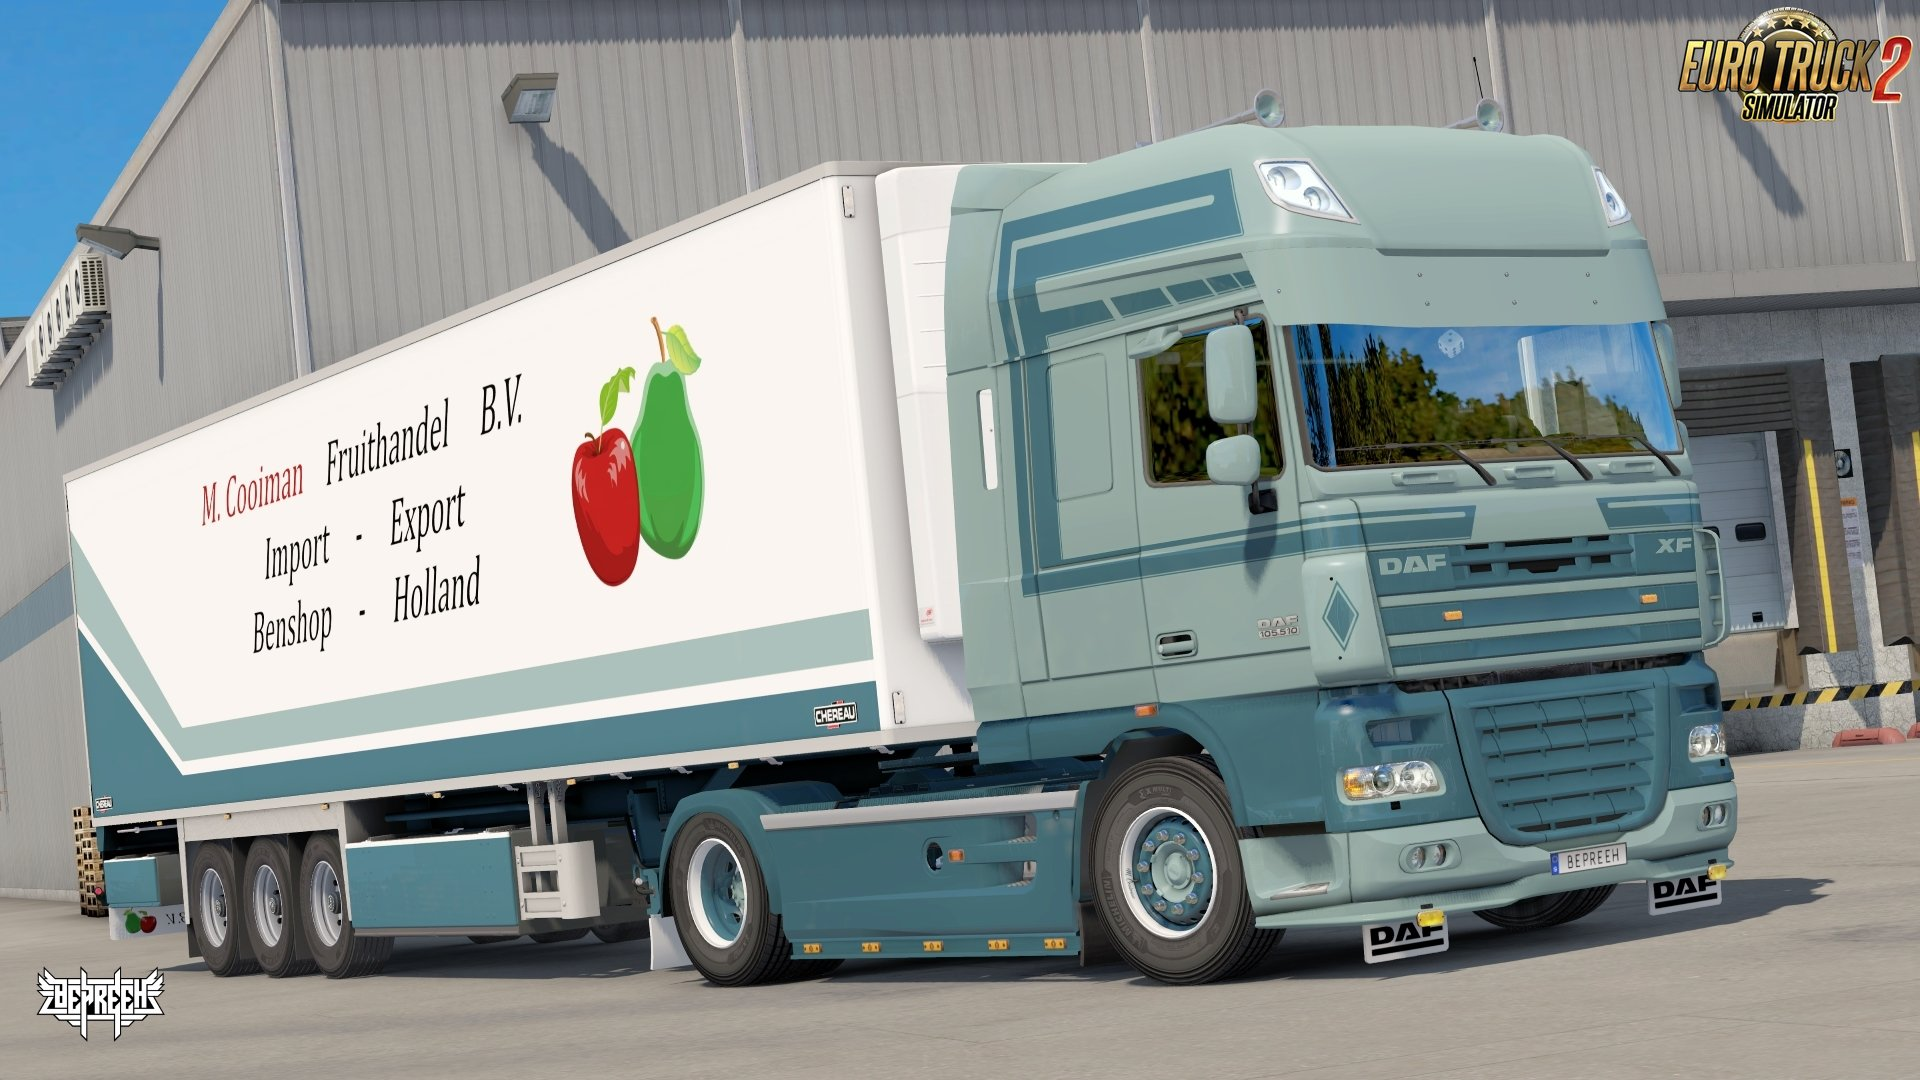 M. Cooiman Combo Pack Skin for DAF XF 105 + Trailer v1.0 by Bepreeh (1.31.x)